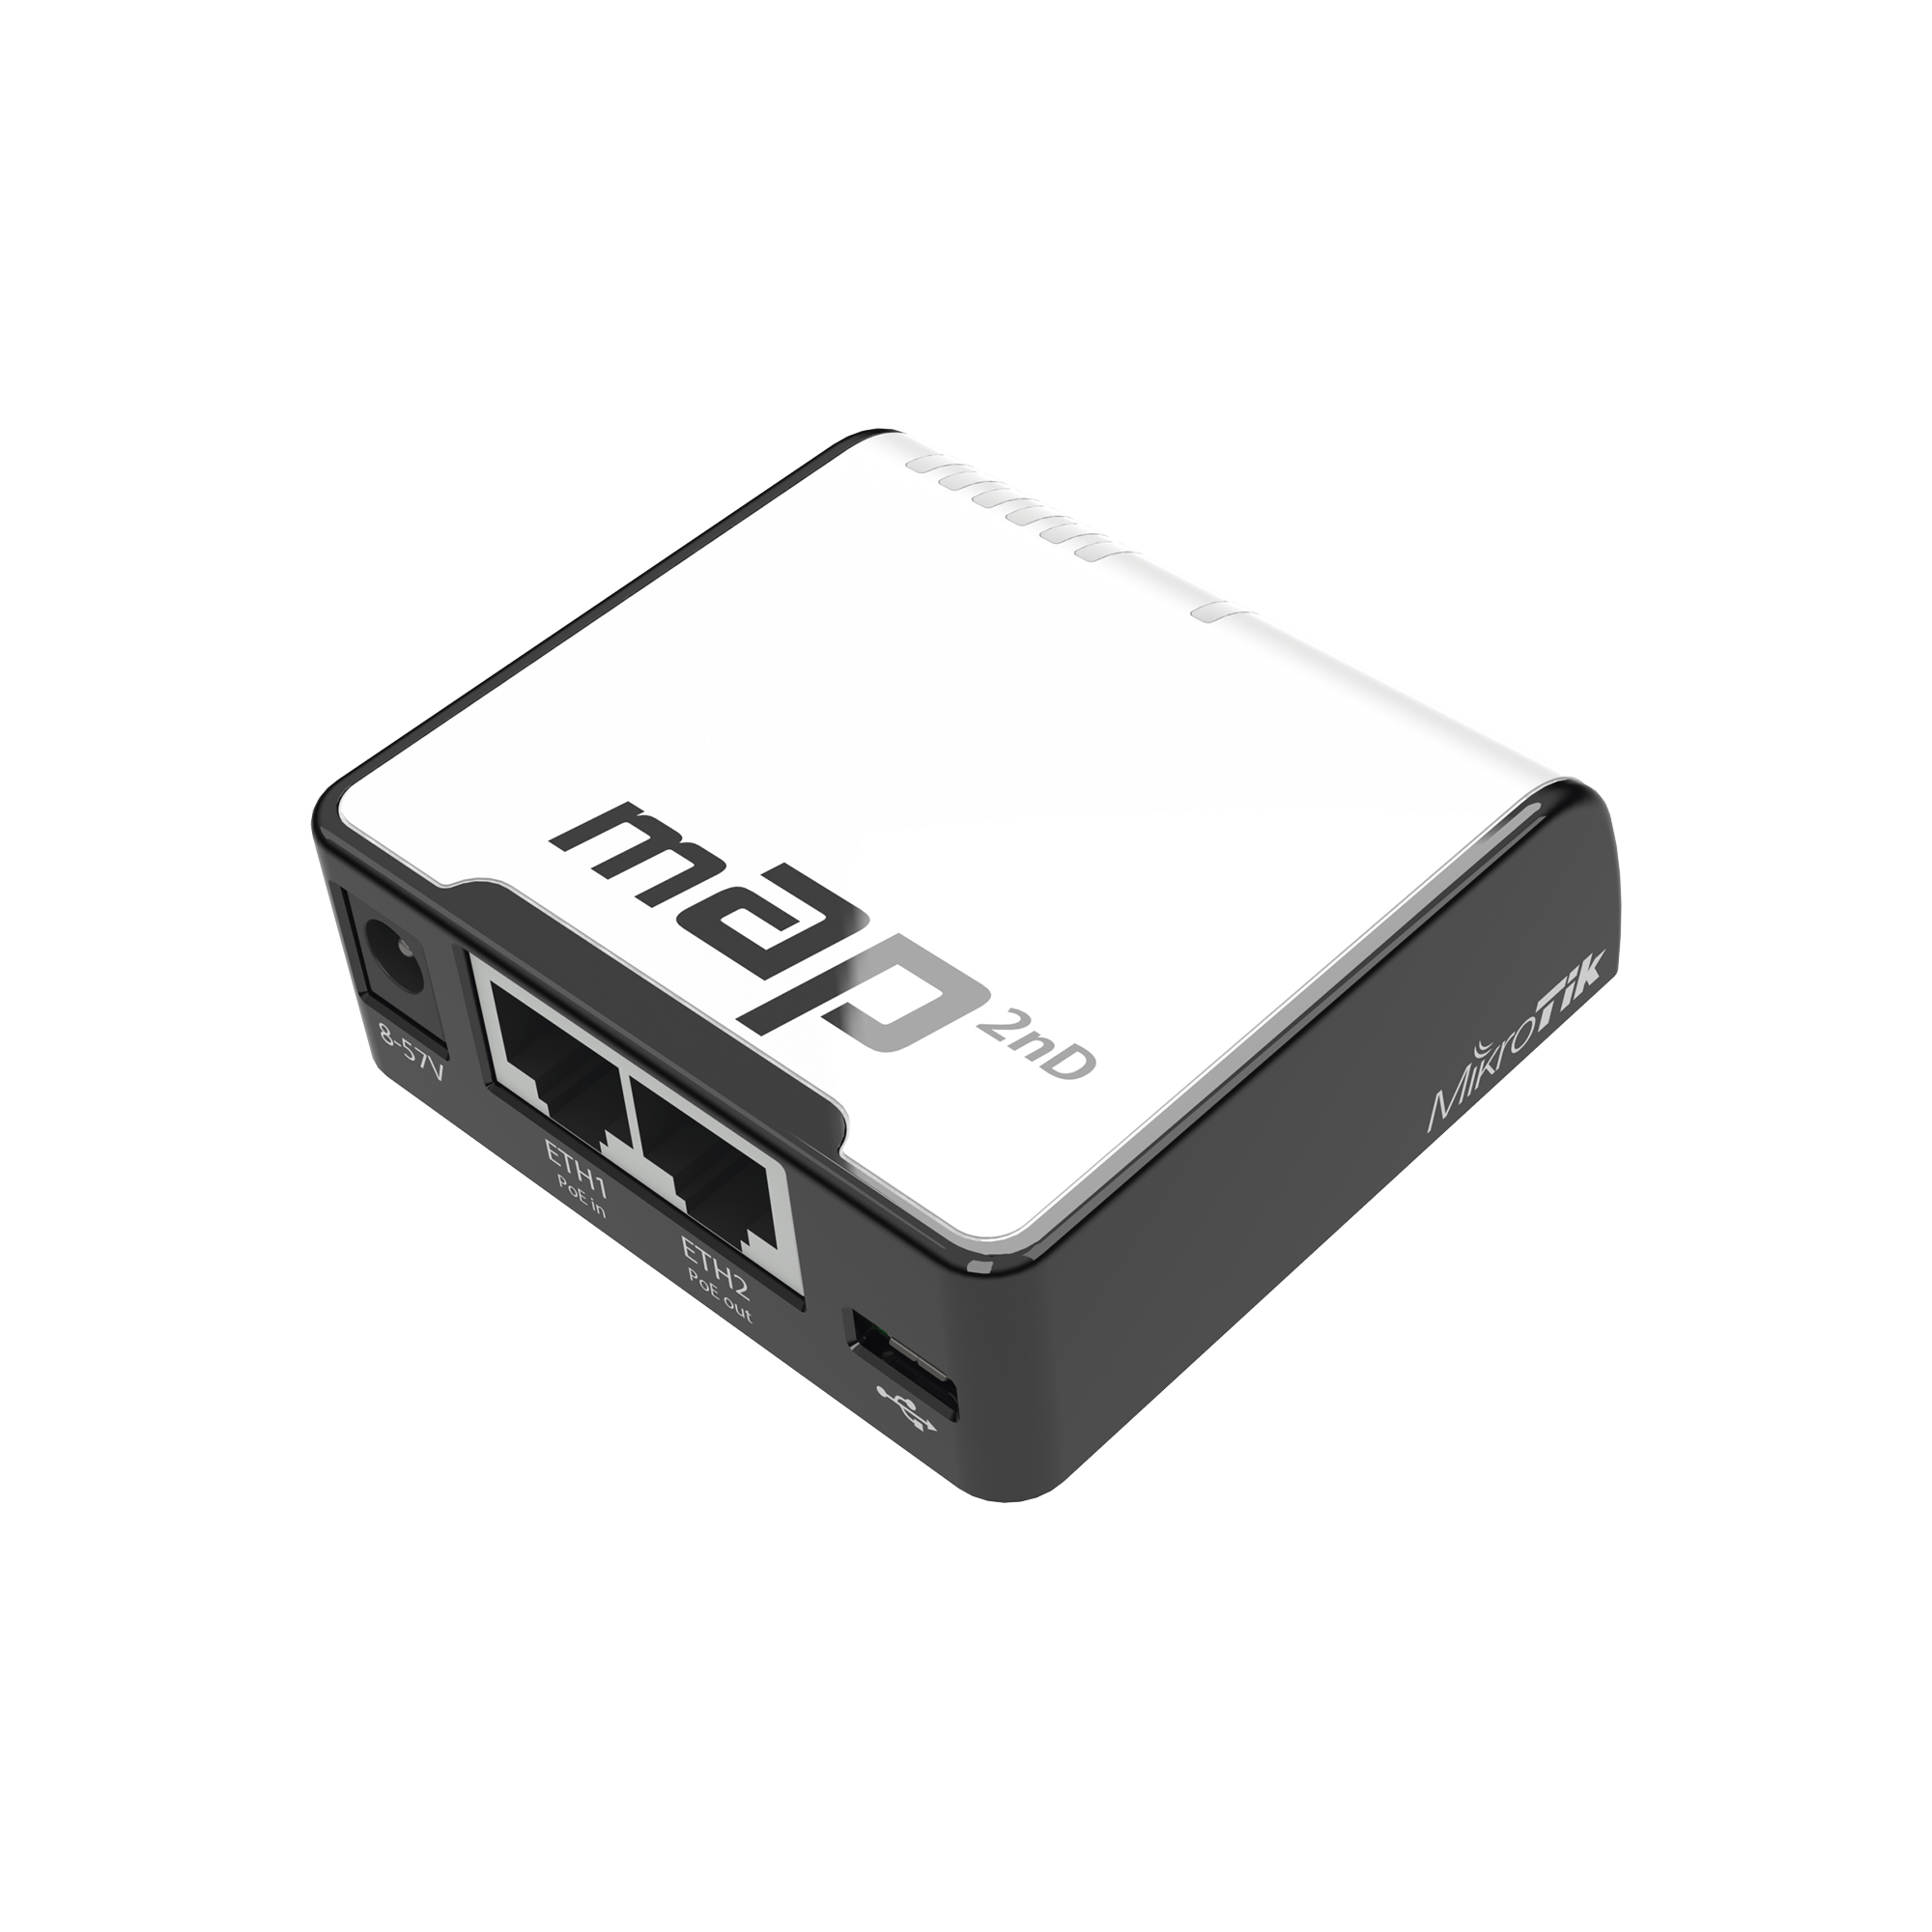 (mAP) 2 Puertos Fast Ethernet, 1 Puerto MicroUSB, WiFi 2.4 GHz 802.11 b/g/n